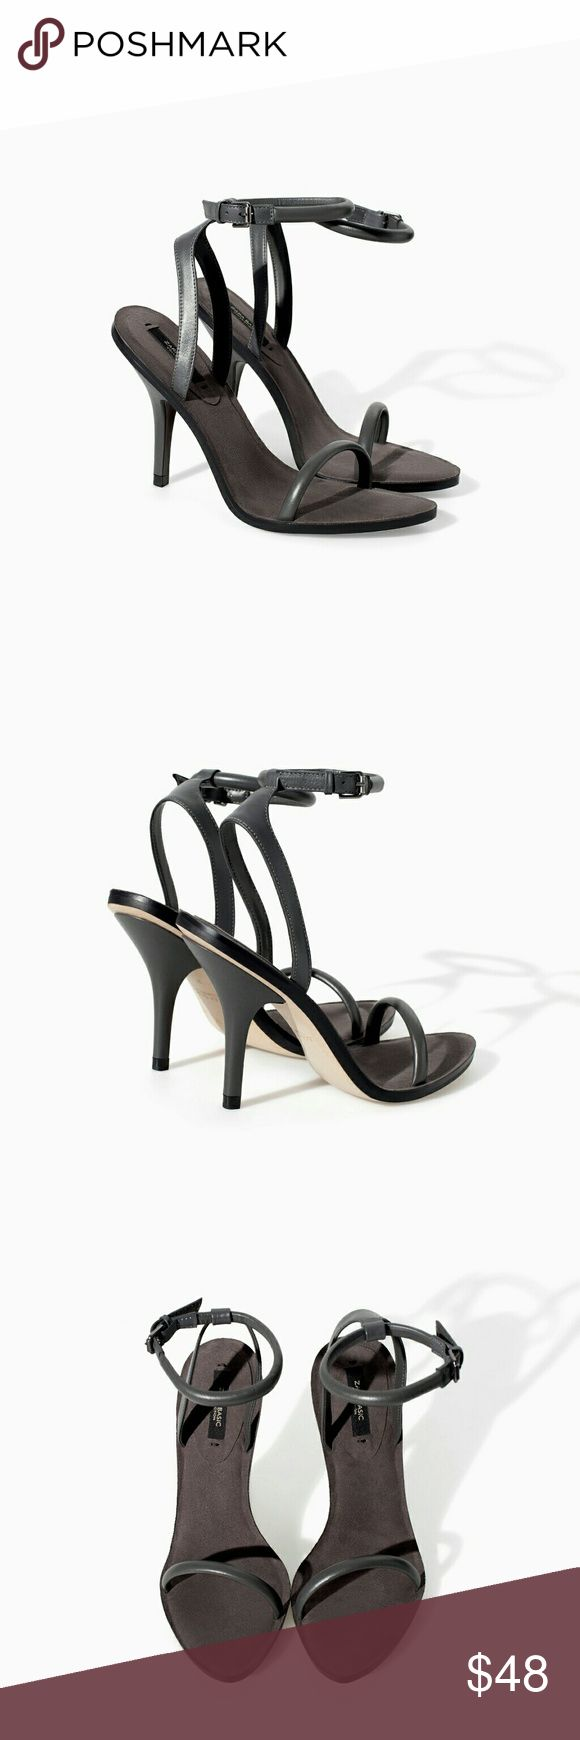 Zara Basic Collection Dark Grey Heeled Sandal Worn once for no more then 30 mintues for a quick photo shoot. A must have for every women's closet. Zara size 38 which is a women's US size 7.5 No Box. Zara Shoes Heels